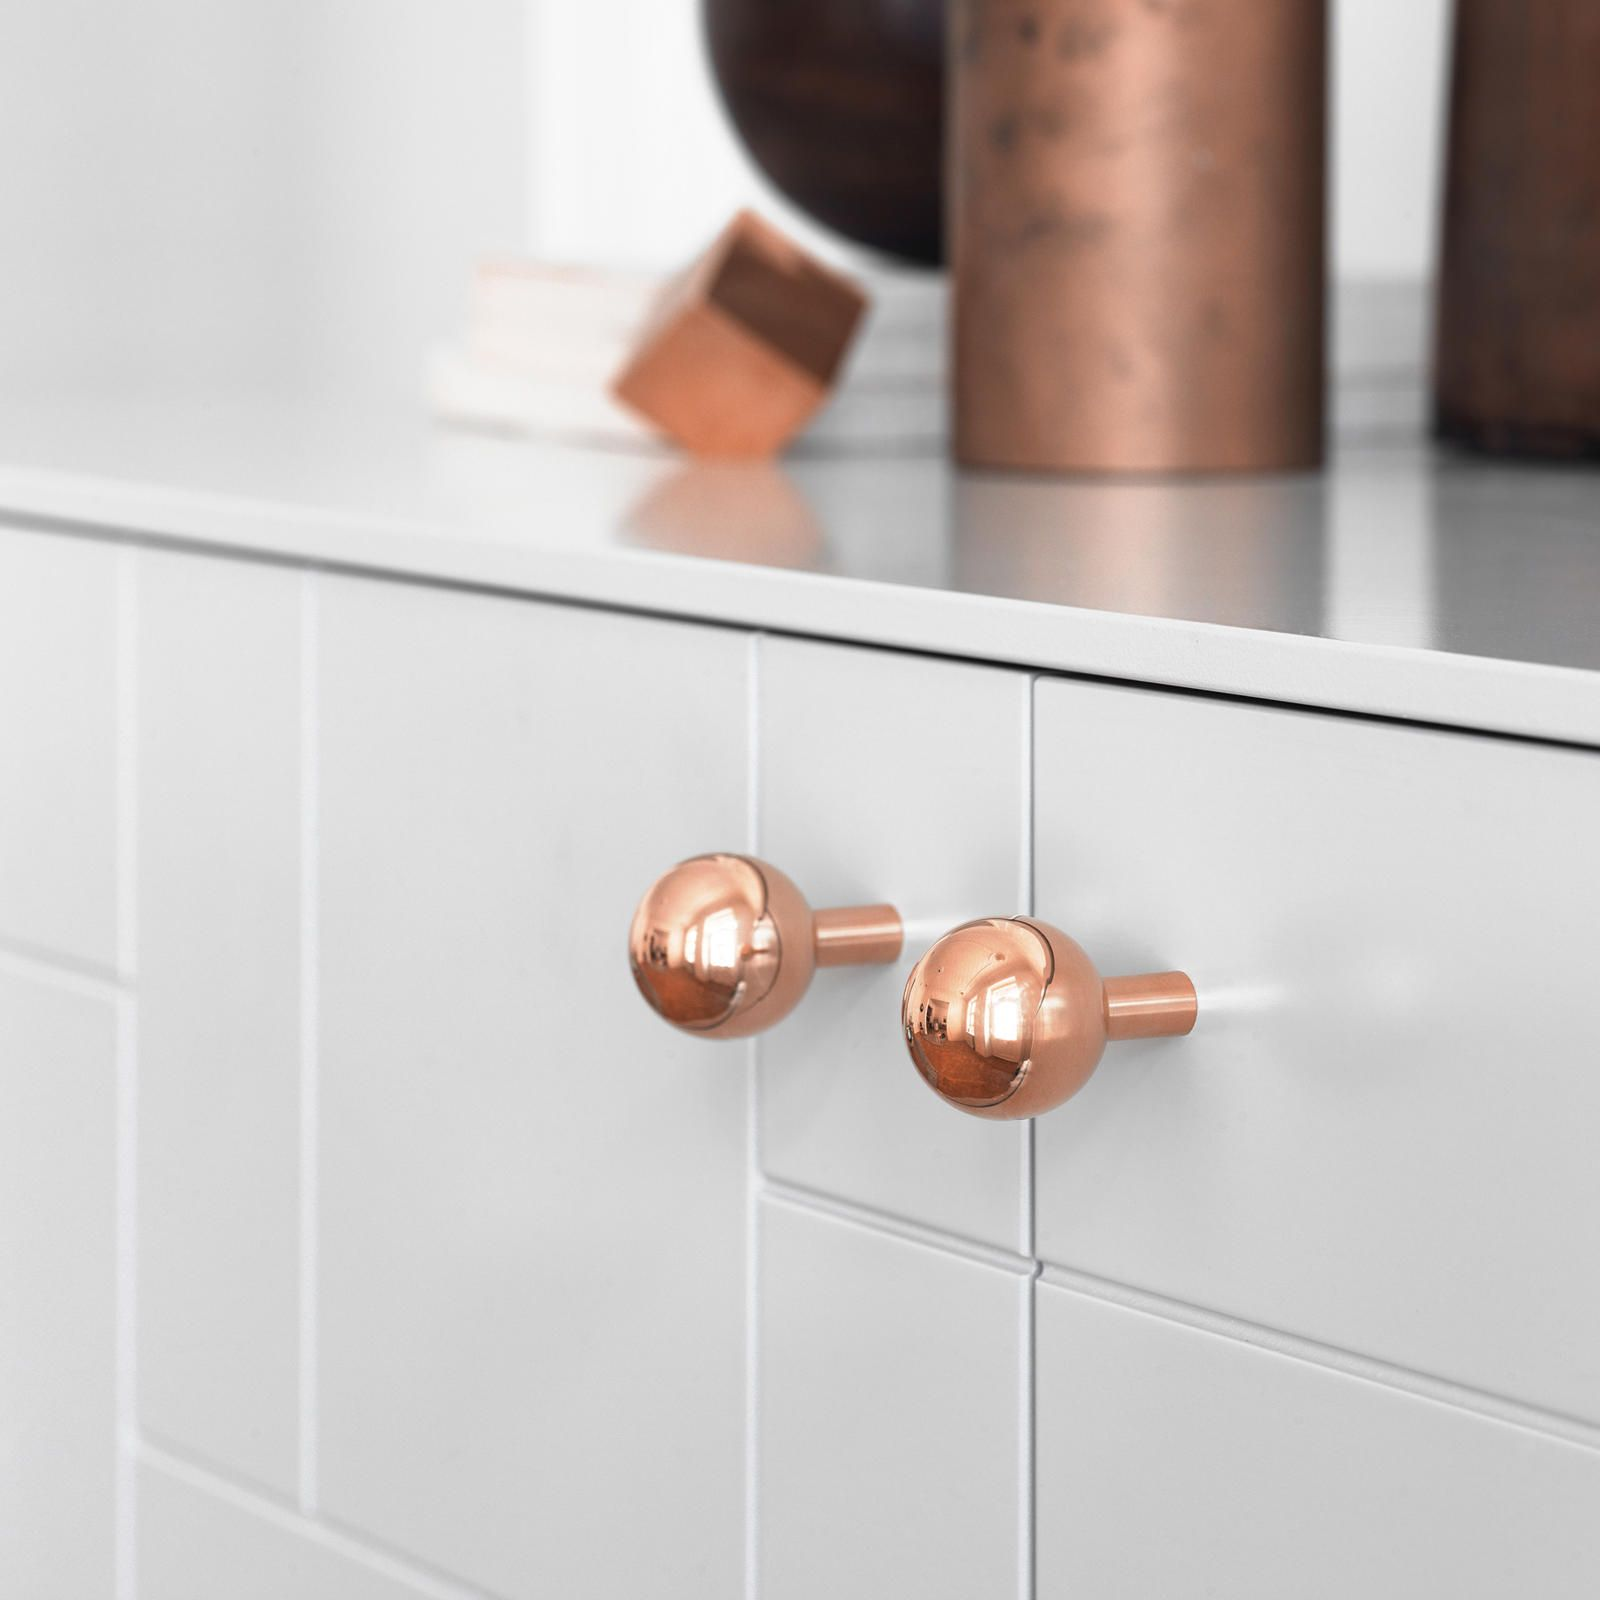 IKEA Superfronts Knobs